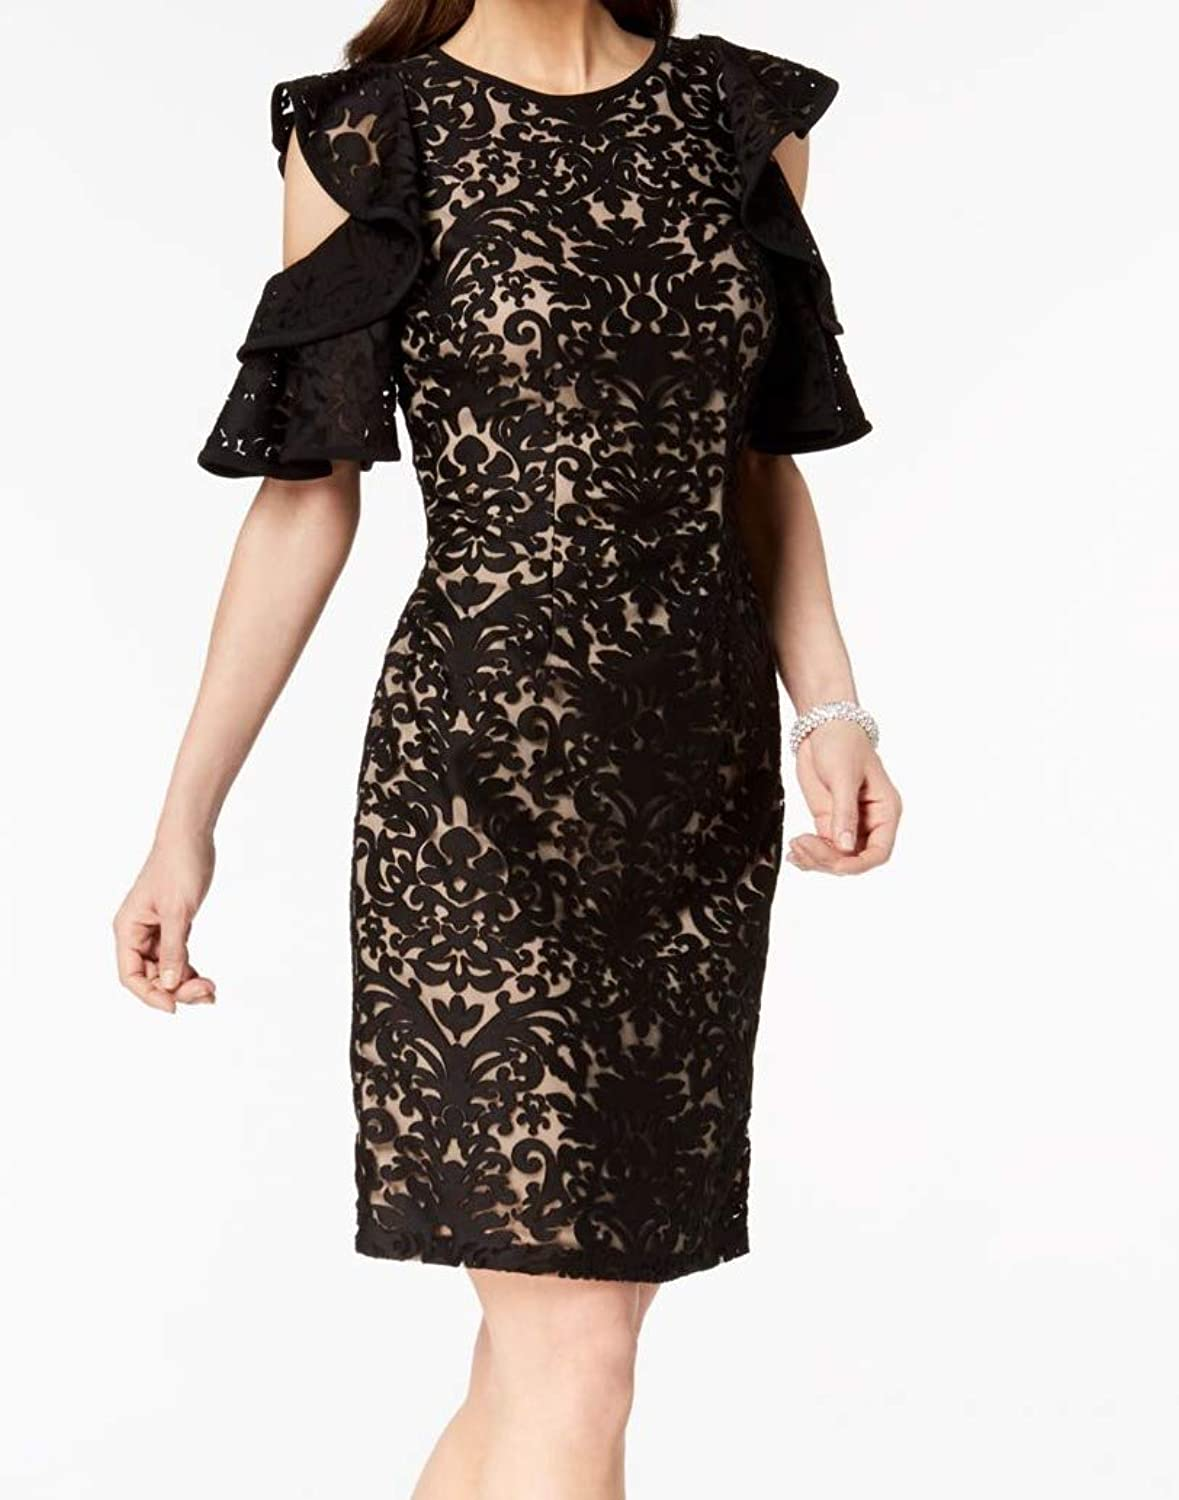 Xscape Womens Lace Cold Shoulder Cocktail Dress